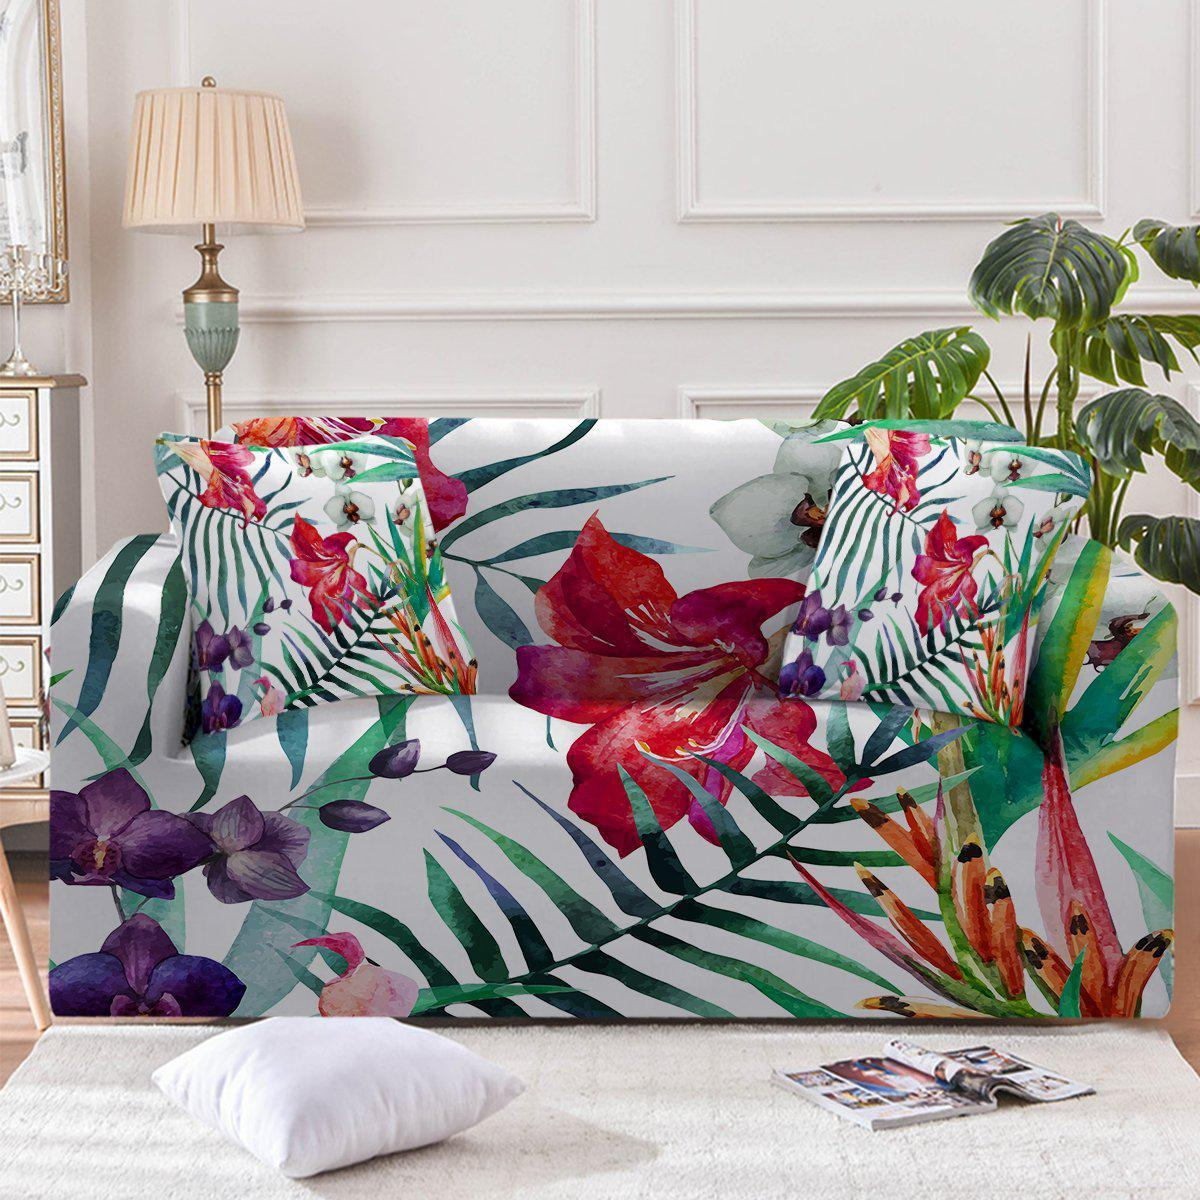 Tropical Floral Couch Cover-Coastal Passion